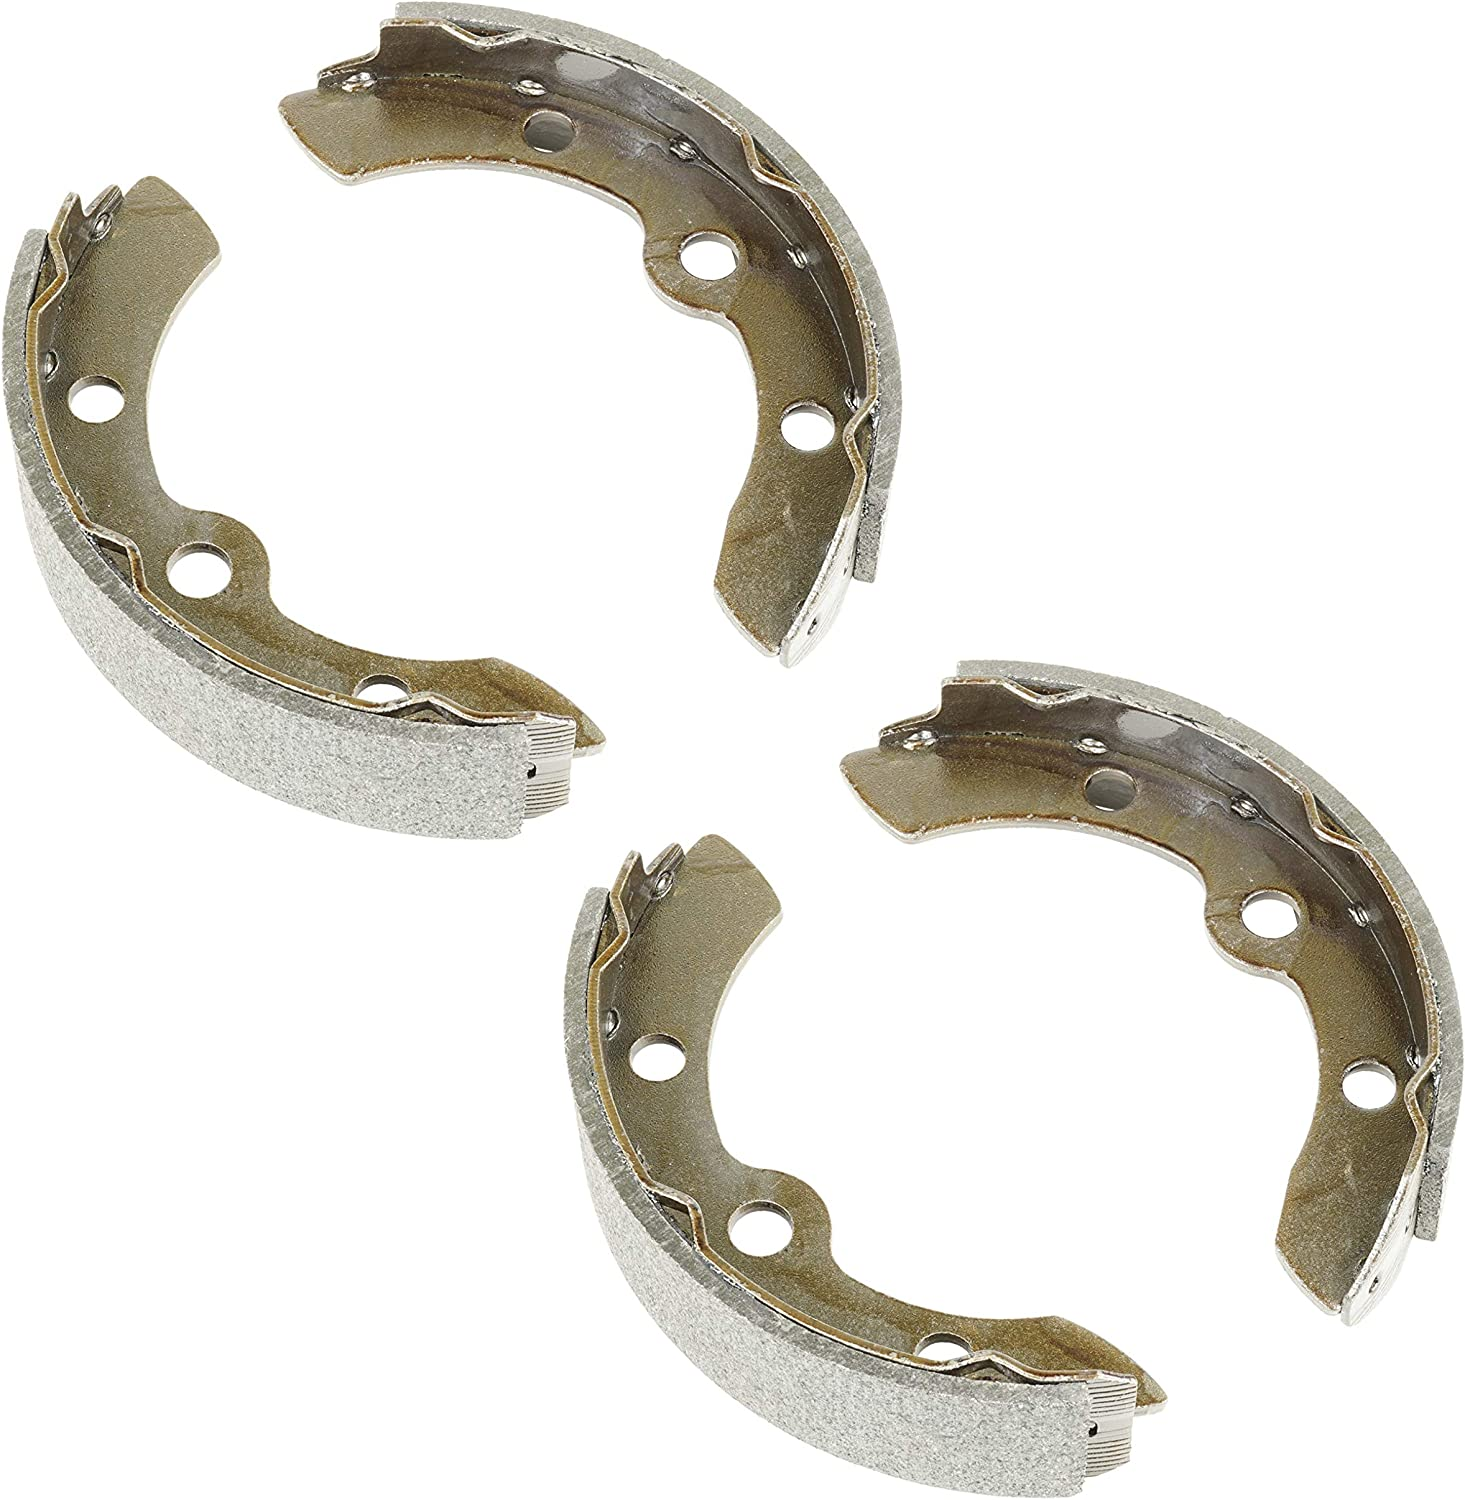 Caltric Brake Shoe Compatible with Yamaha J17-25340-00 J55-W2536-00 2 Set of Short and Long Shoe